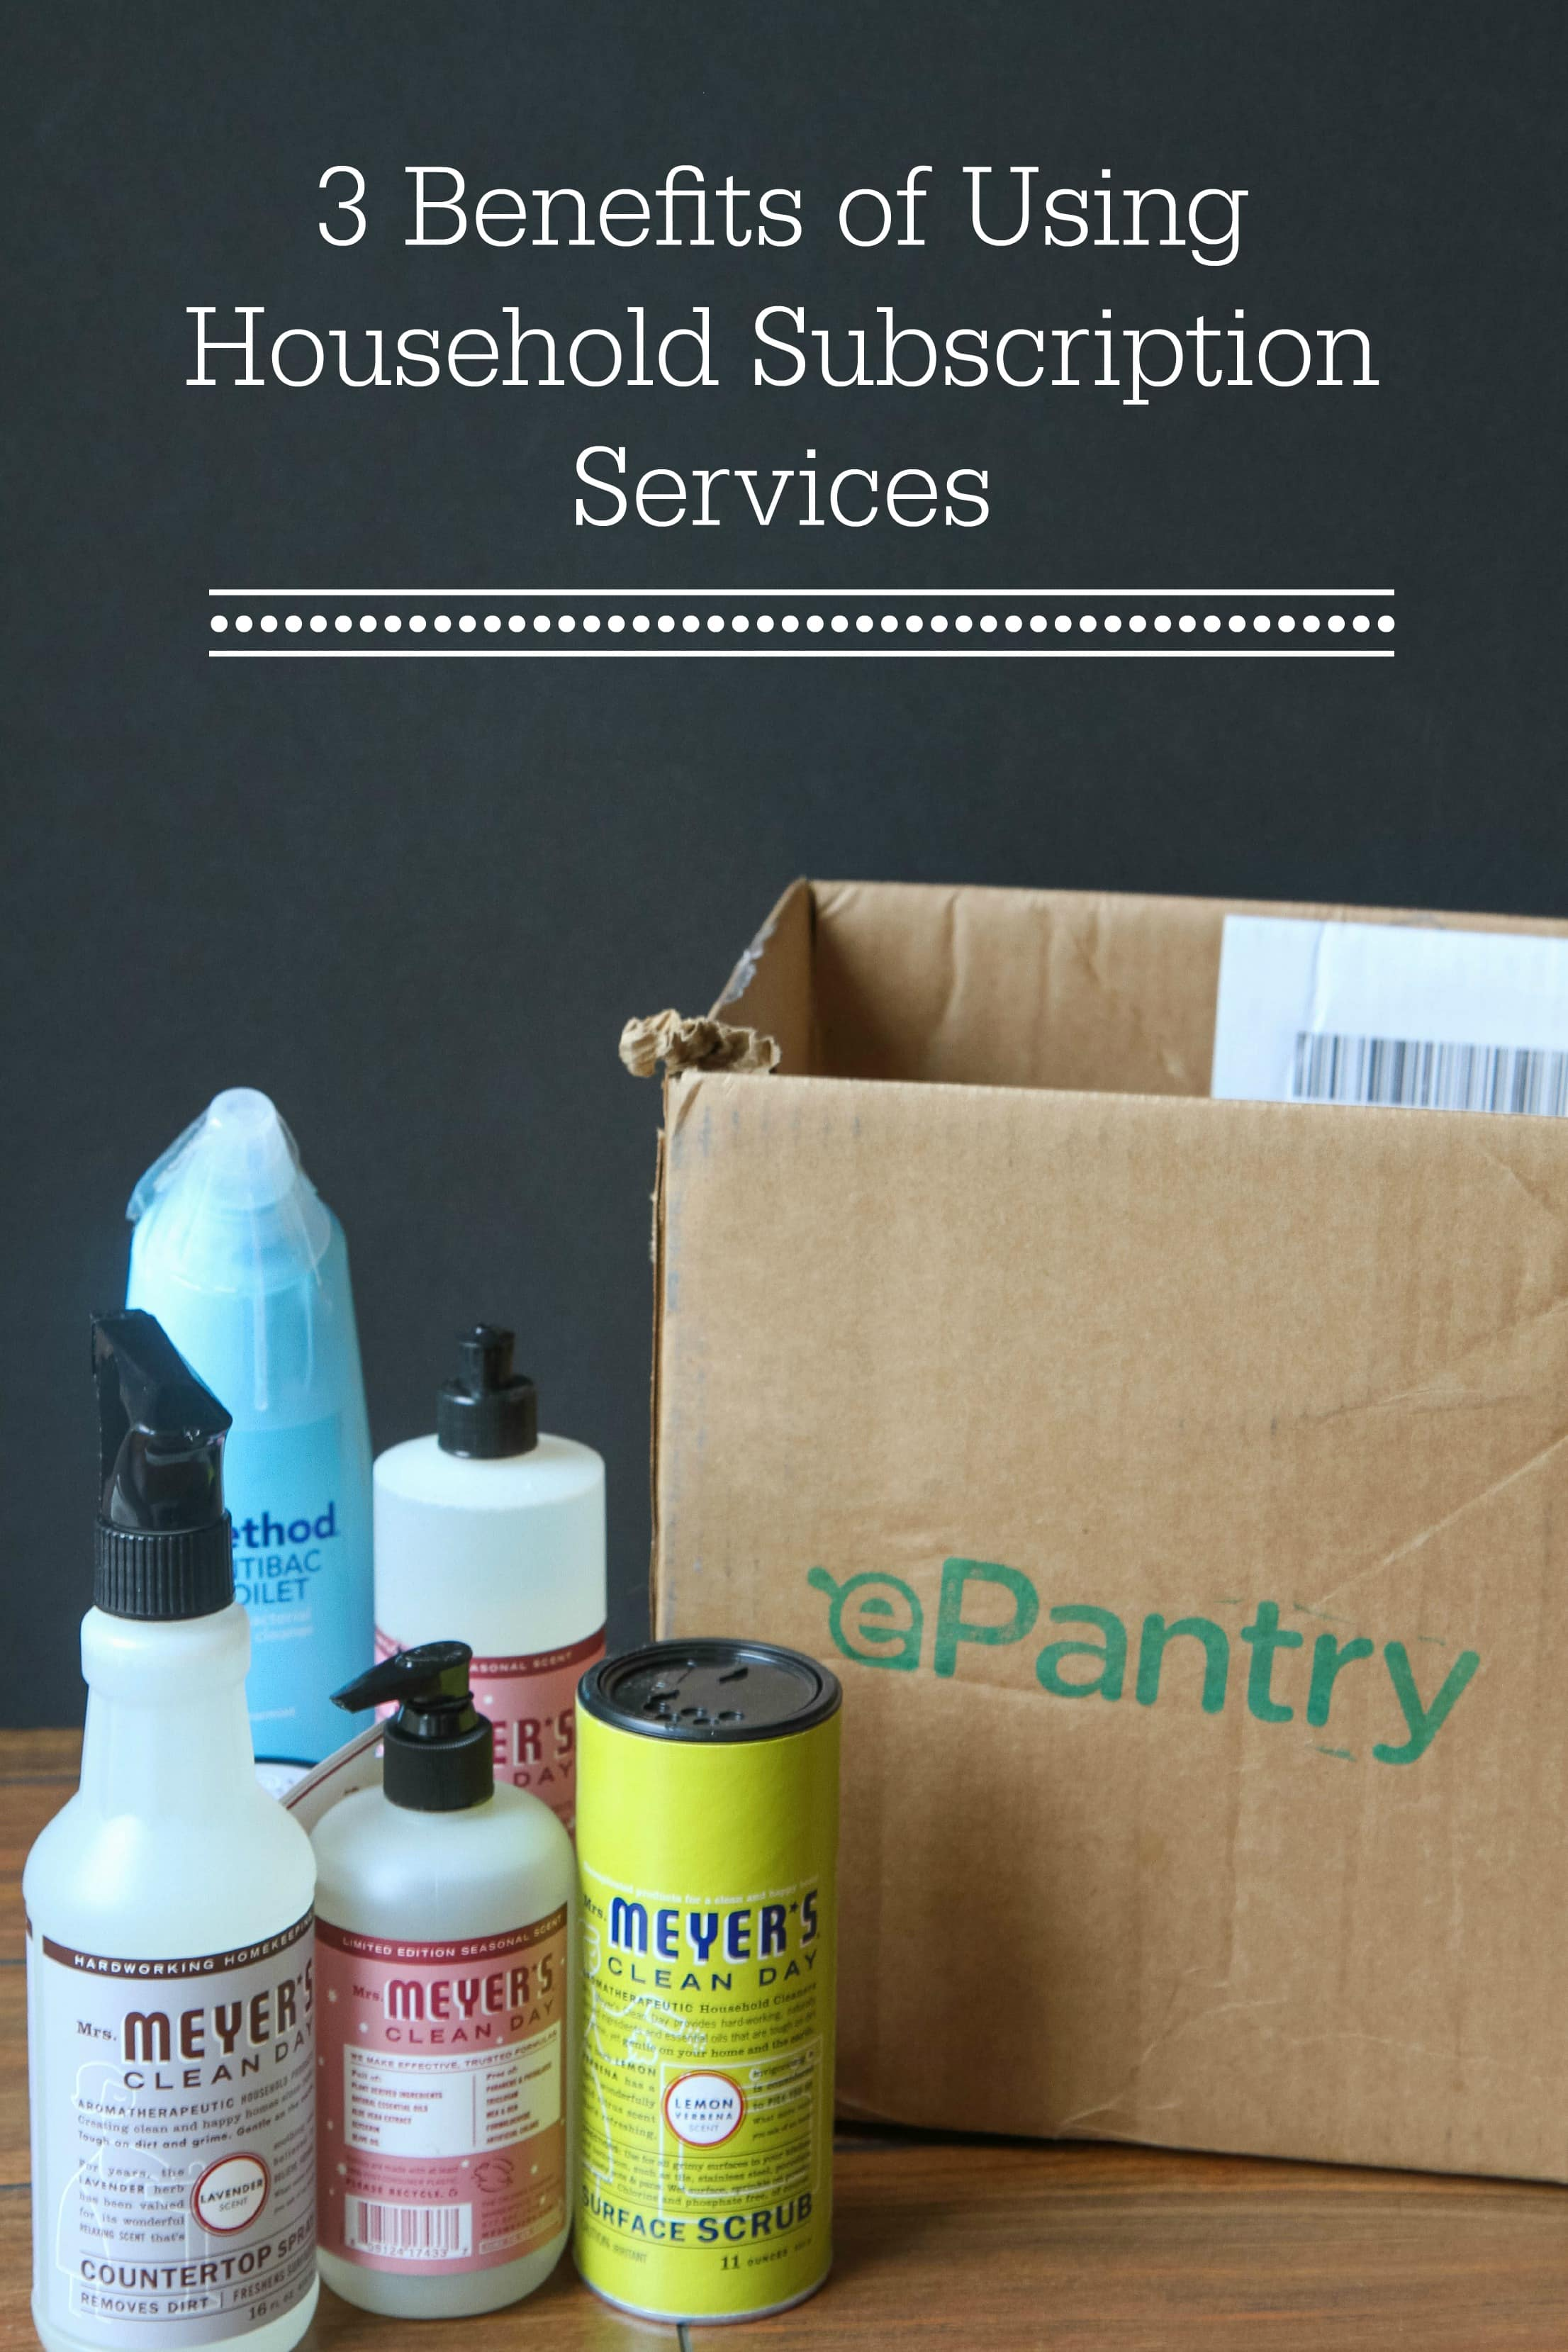 3 Benefits of Household Subscription Services + Free $10 Credit for ePantry